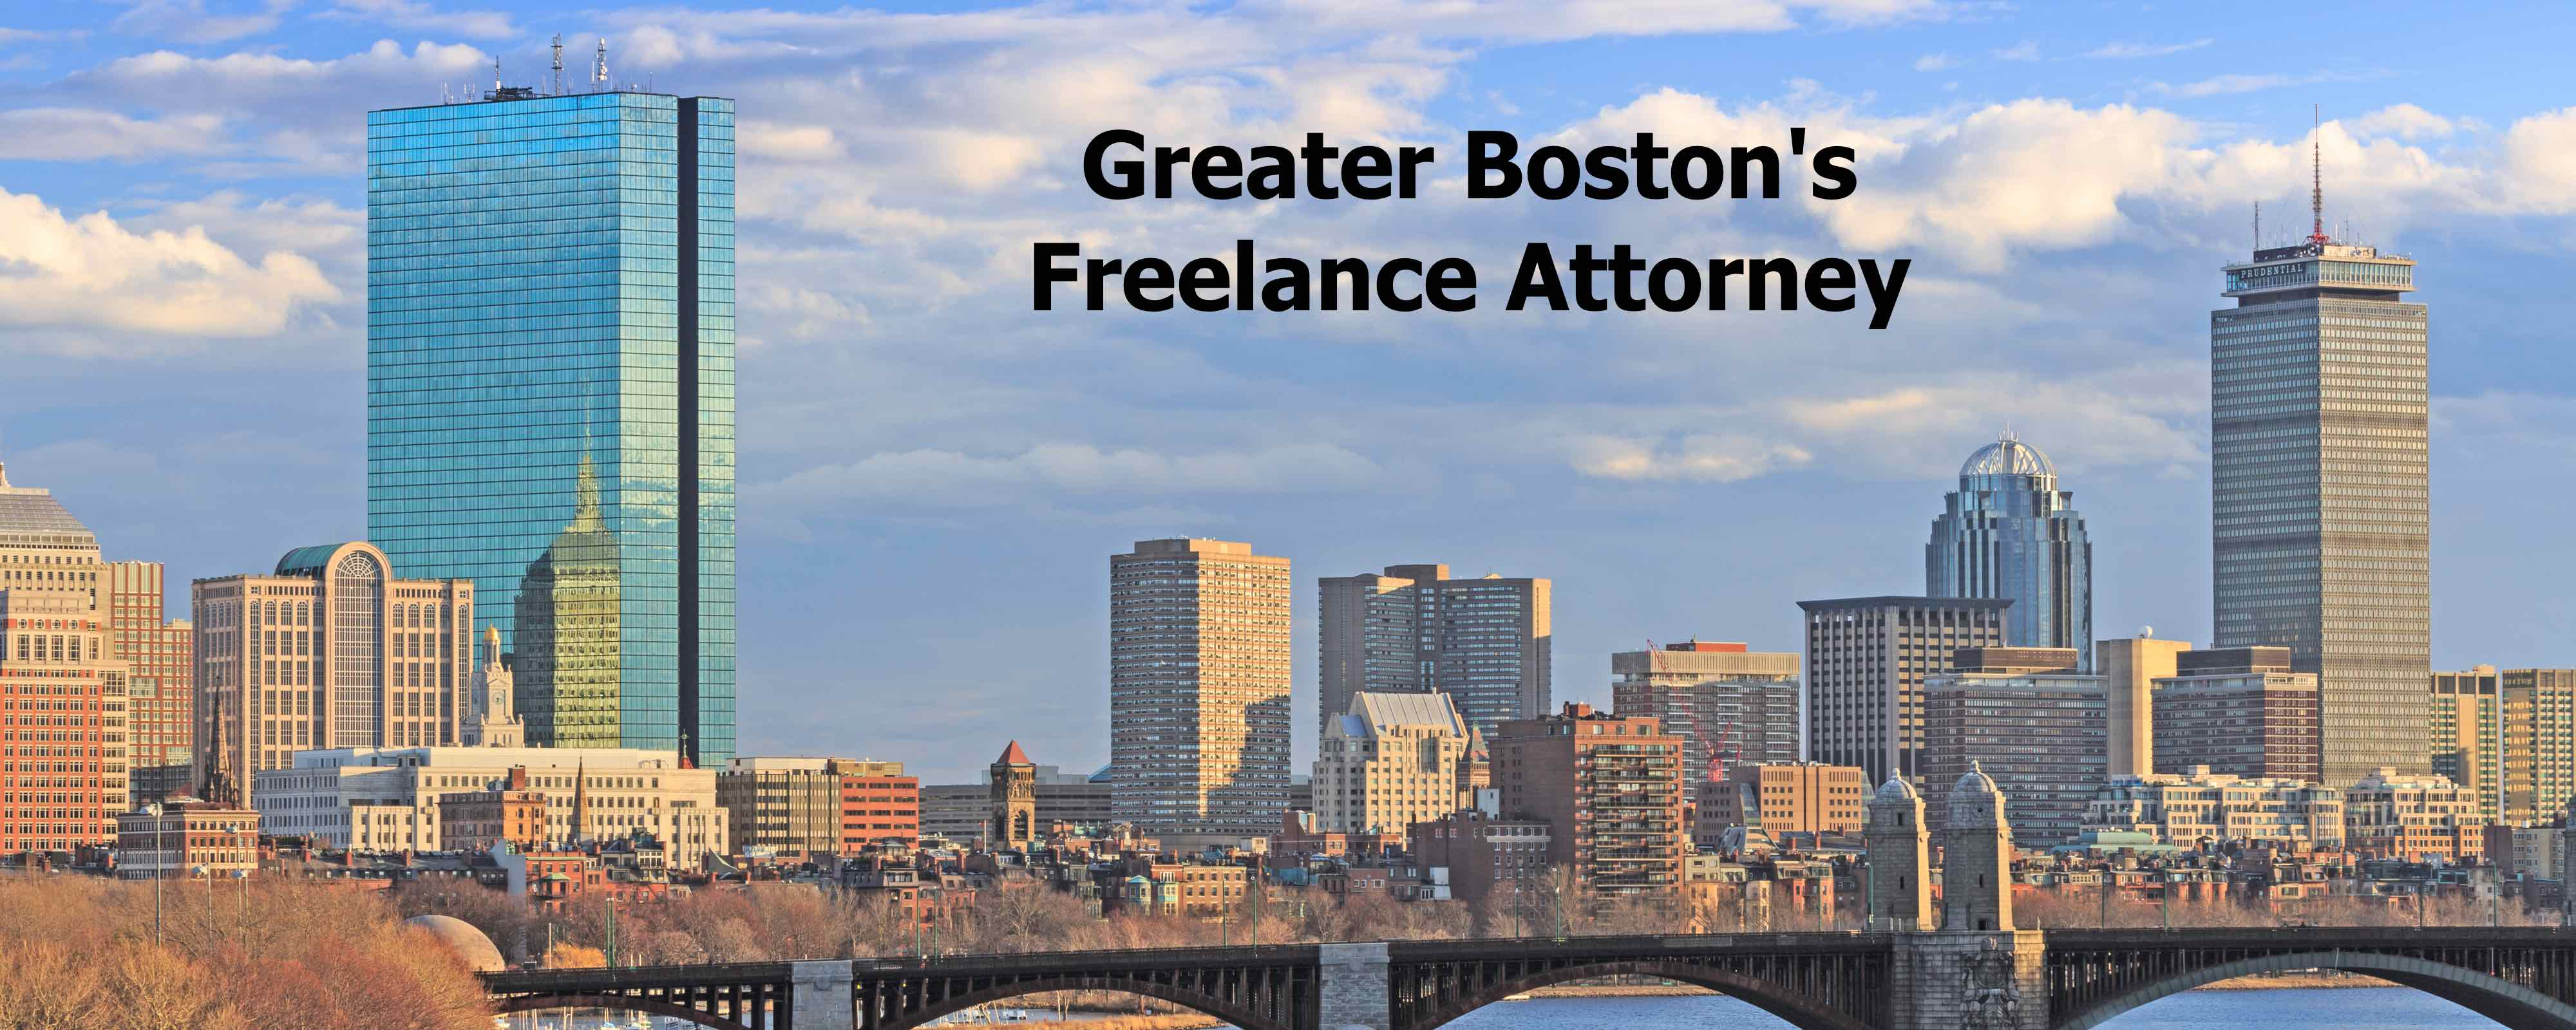 Greater Boston's Freelance Attorney